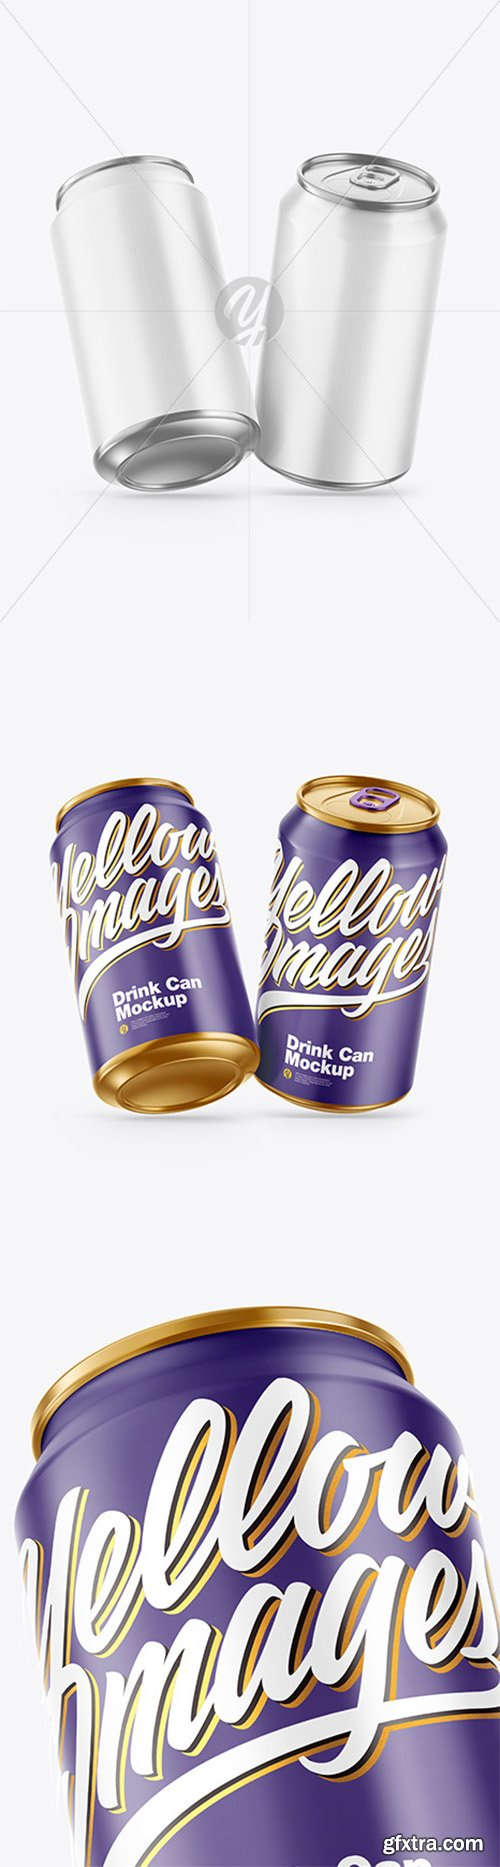 Two Metallic Drink Cans w/ Glossy Finish Mockup 68403